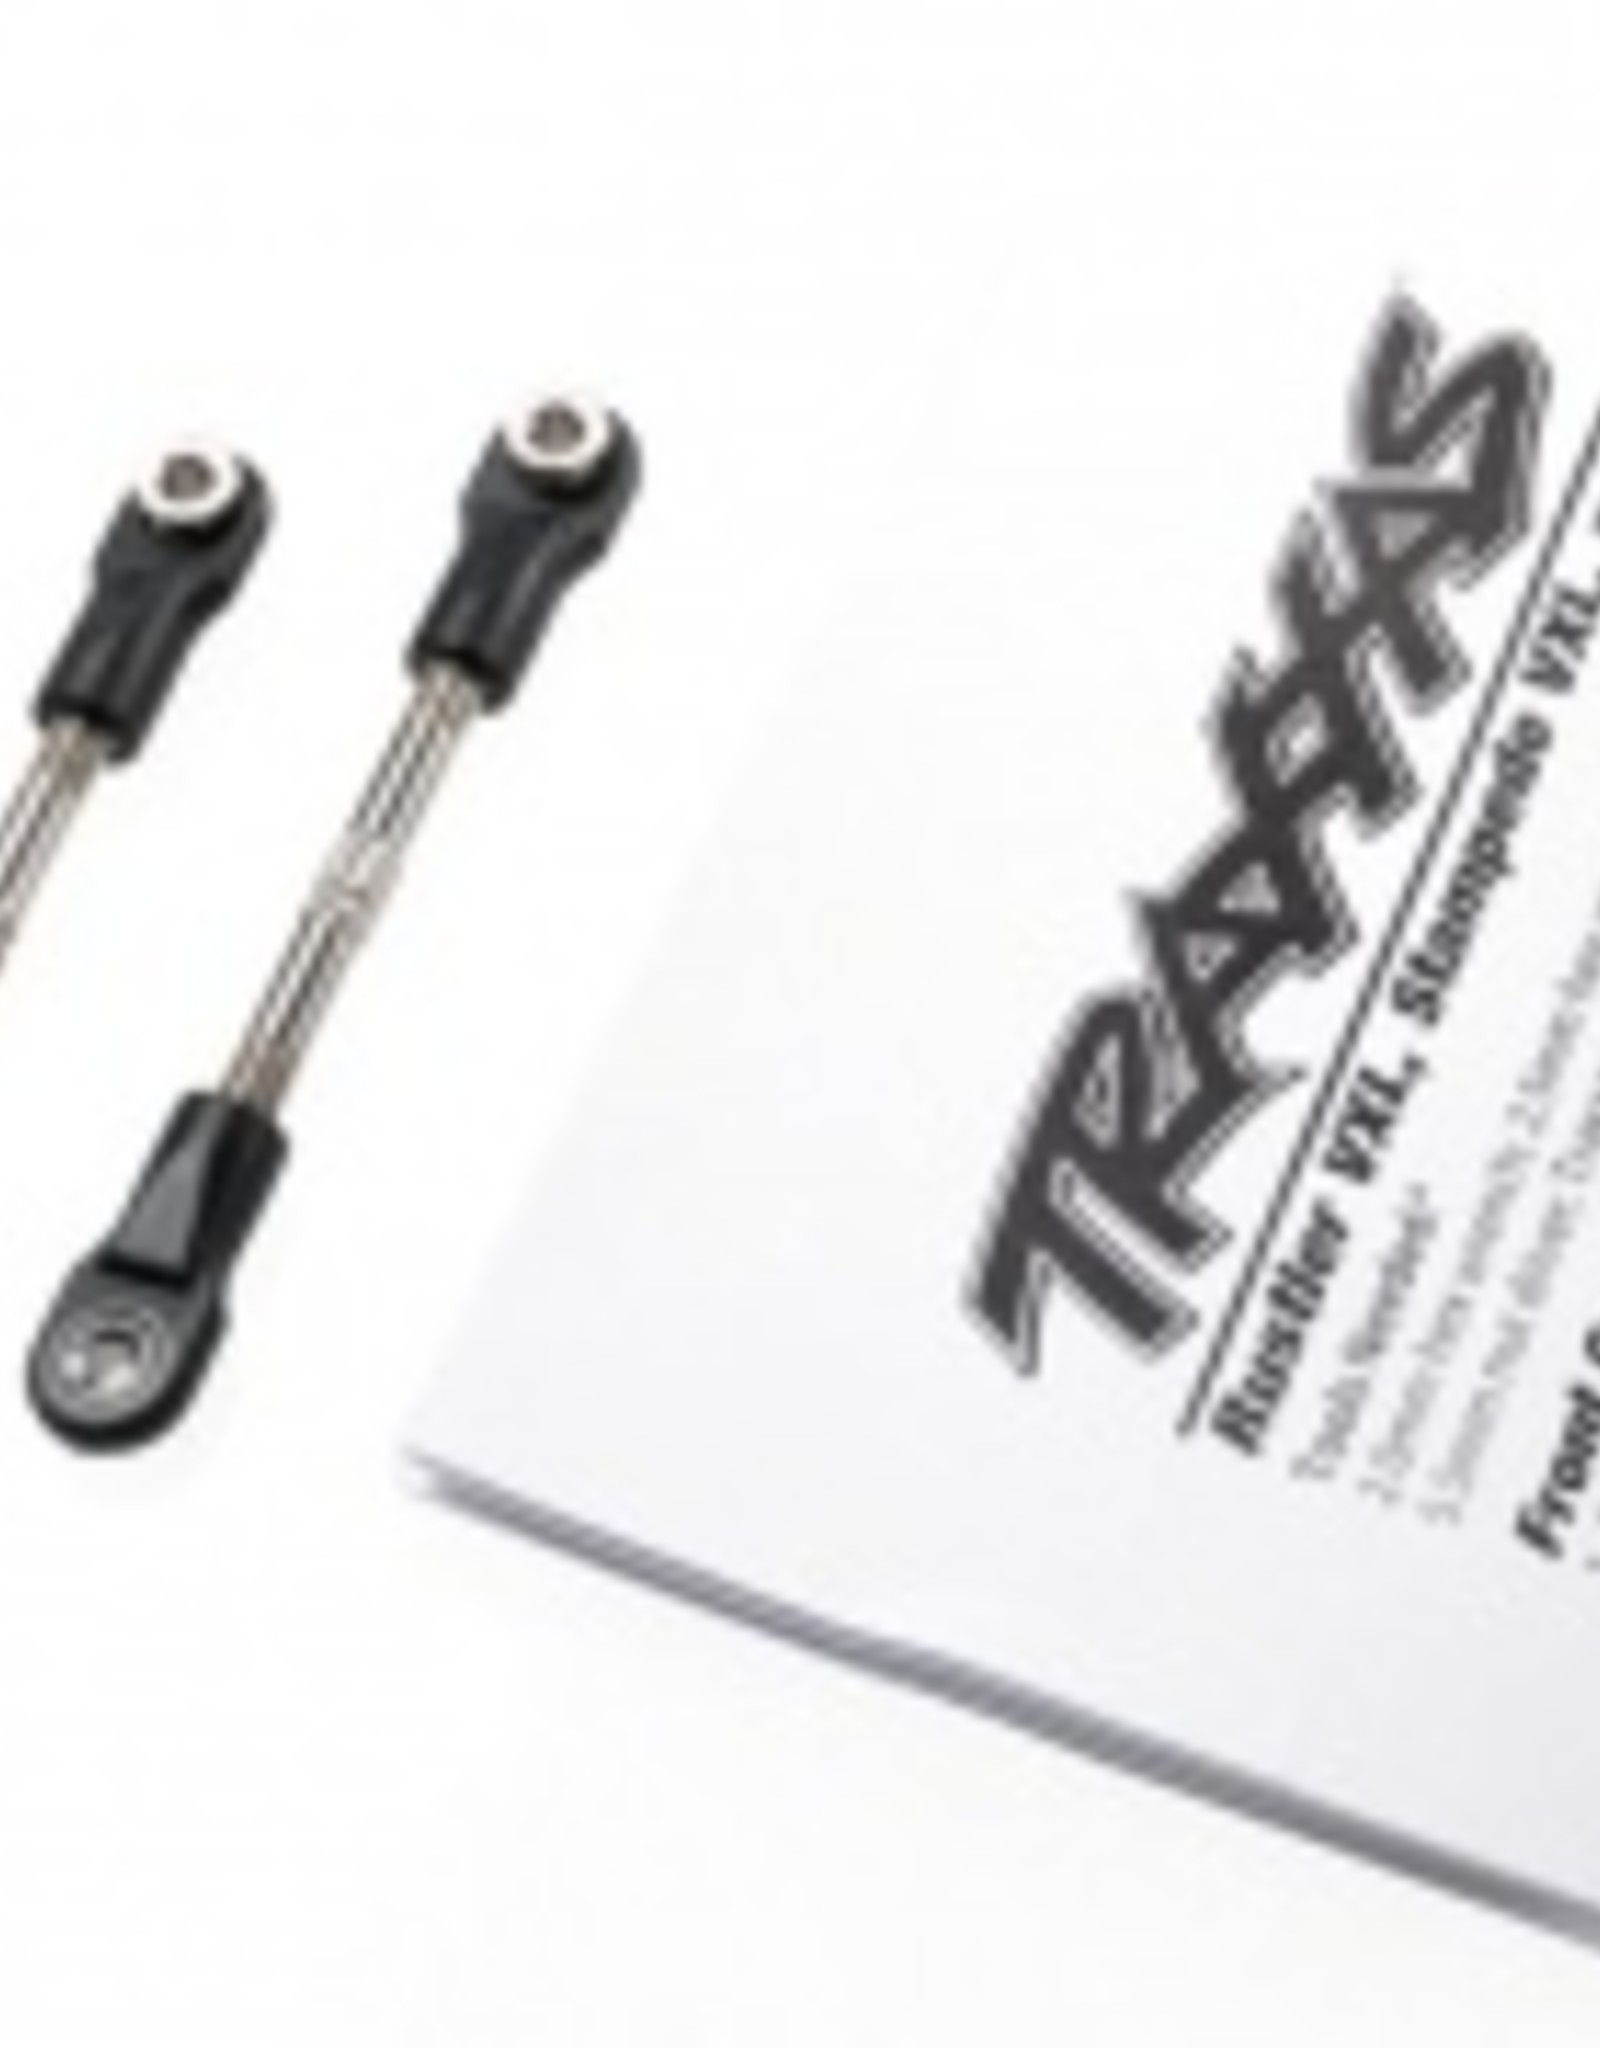 Traxxas Traxxas Bandit/Vxl Turnbuckles, camber link, 47mm (67mm center to center) (front) (assembled with rod ends and hollow balls) (1 left, 1 right)